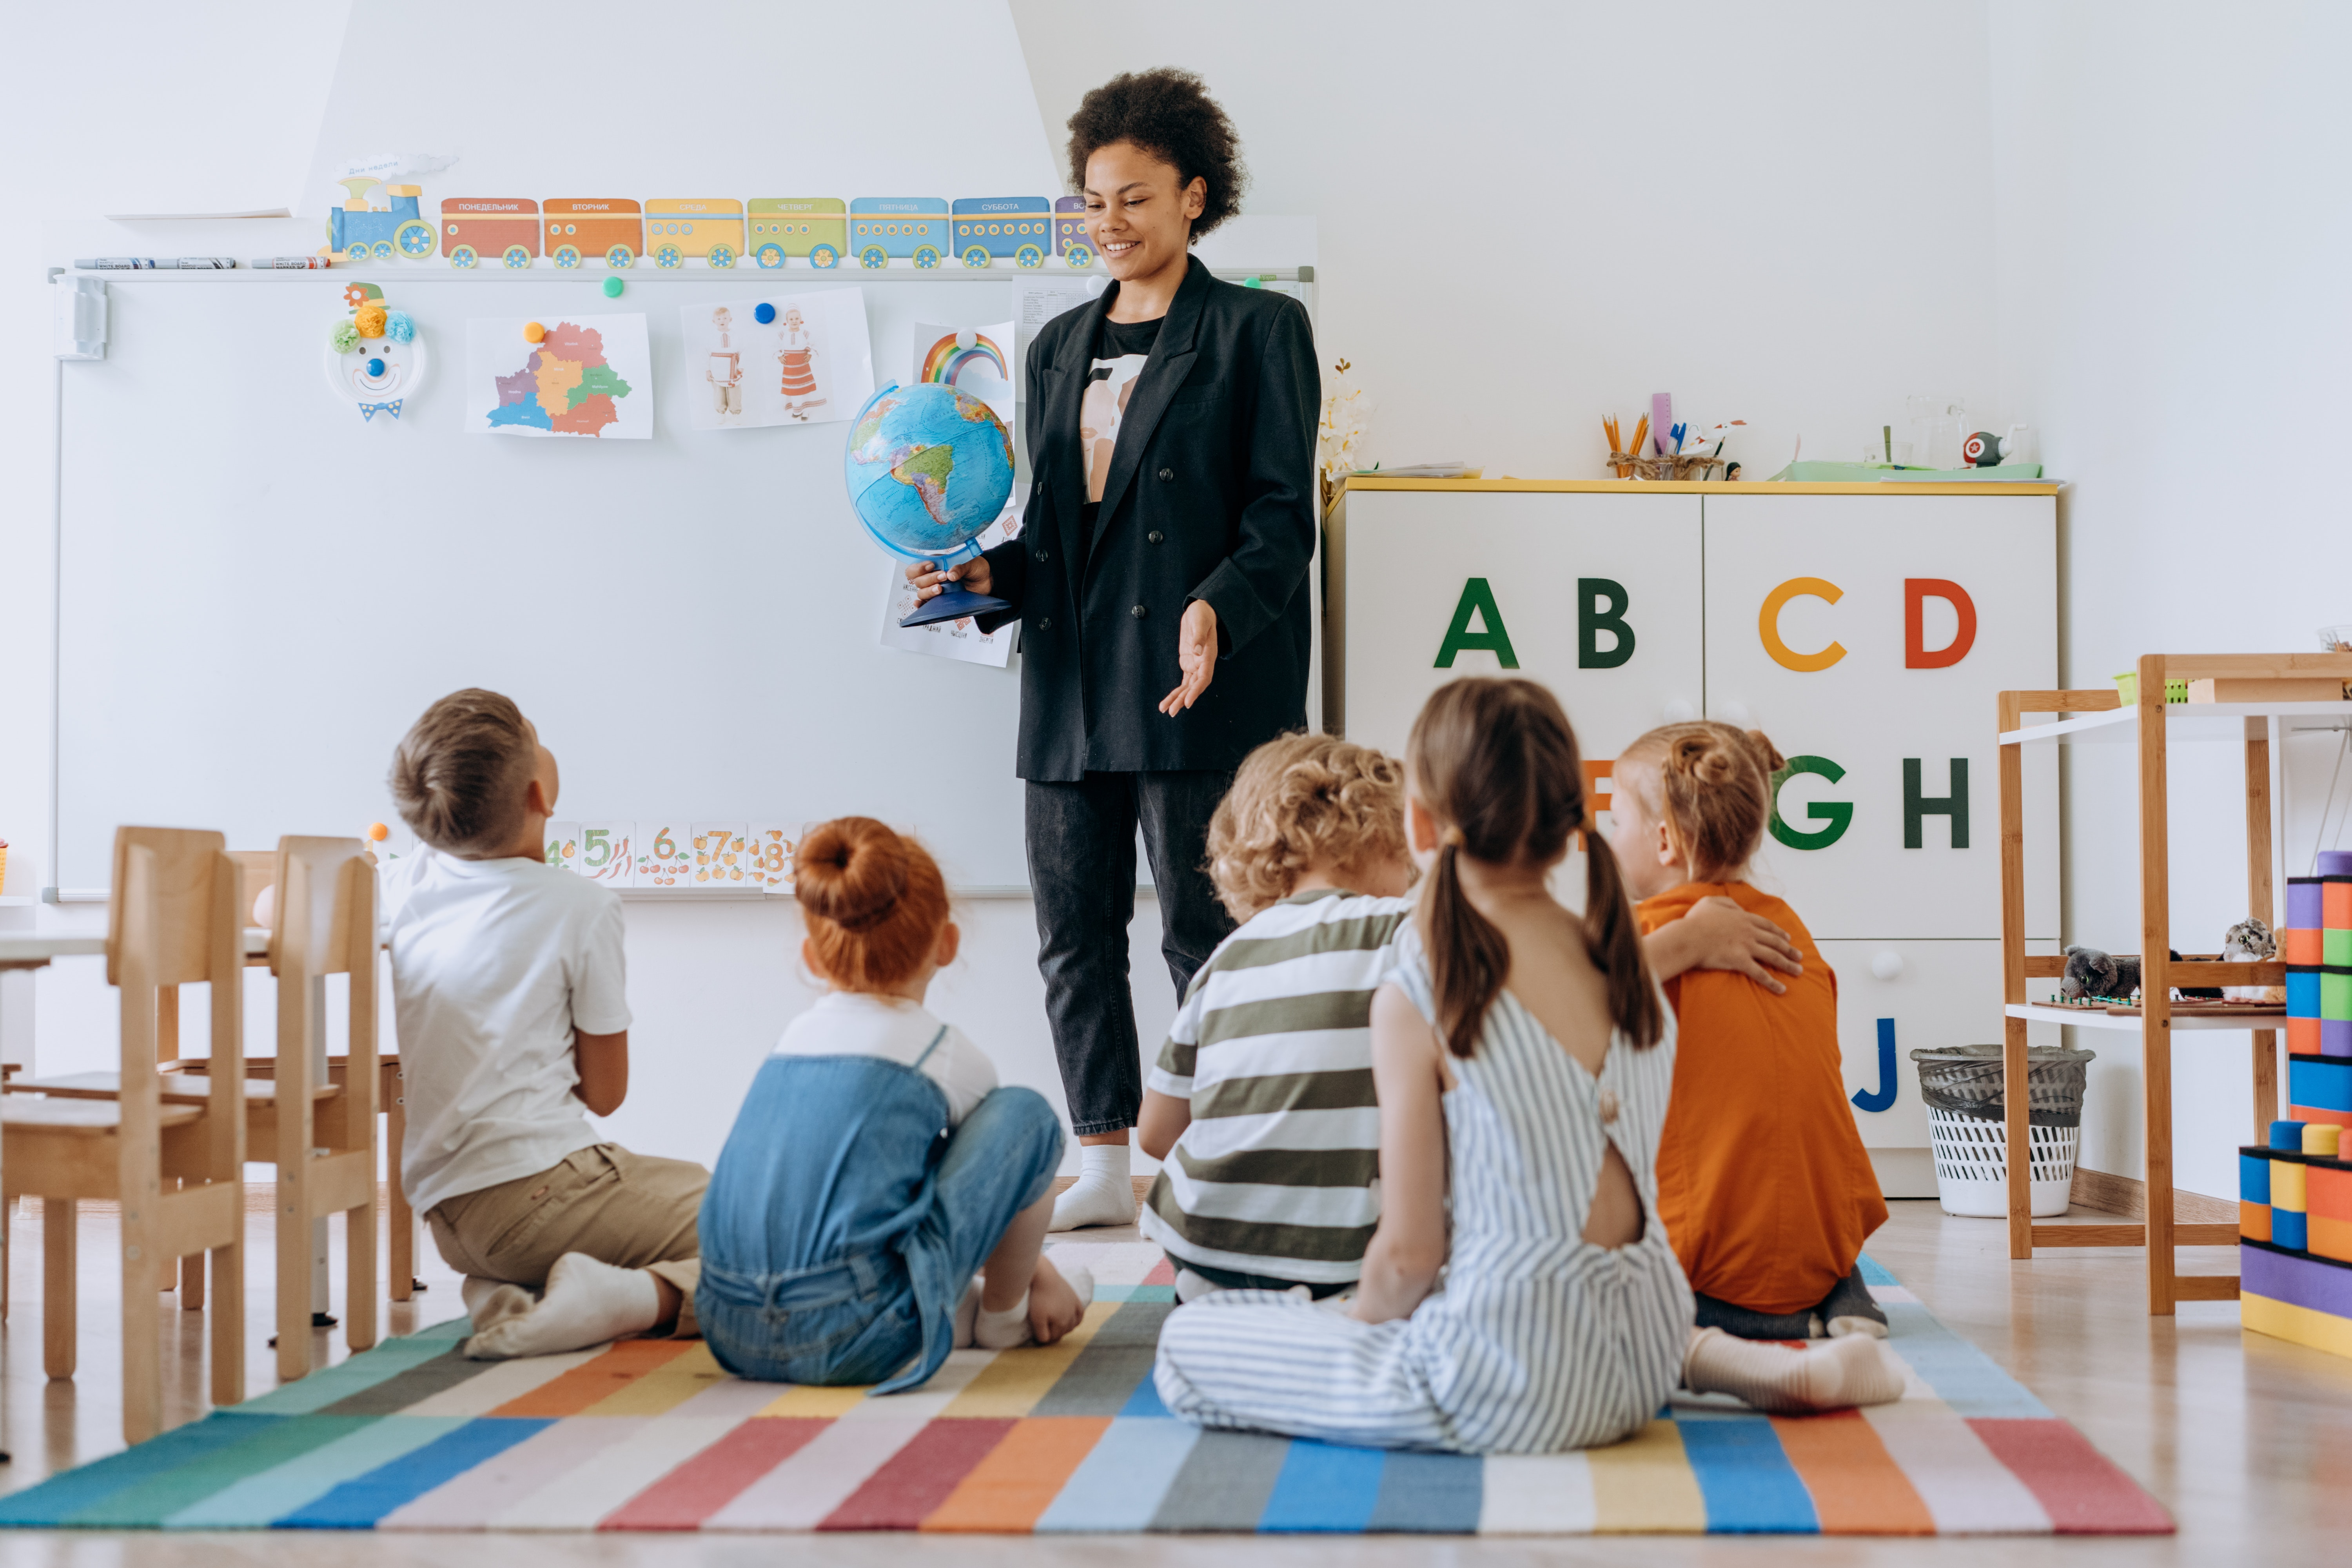 A teacher works with students in a classroom